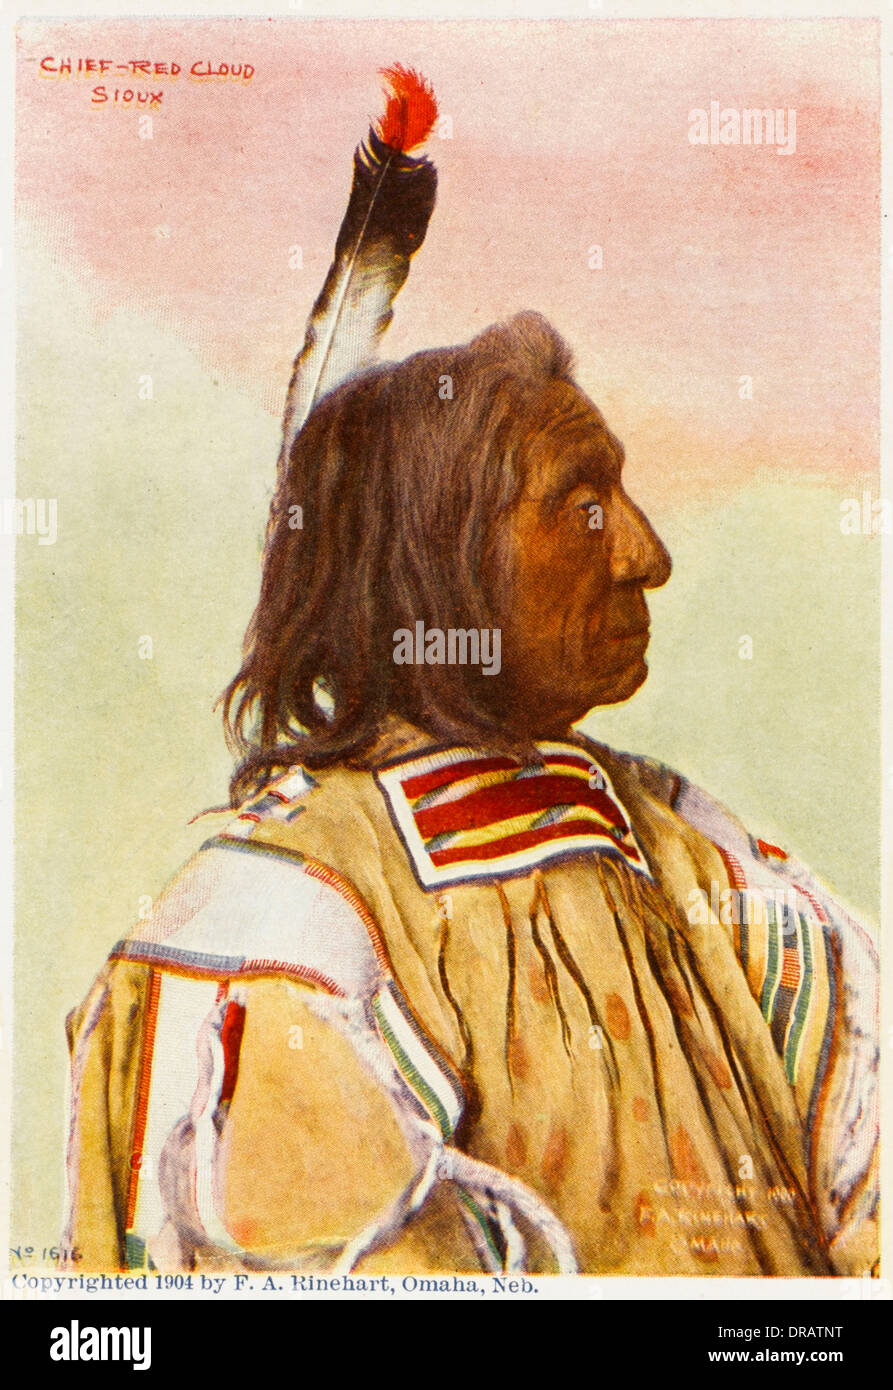 Chief Red Cloud - Sioux Chieftain - Stock Image